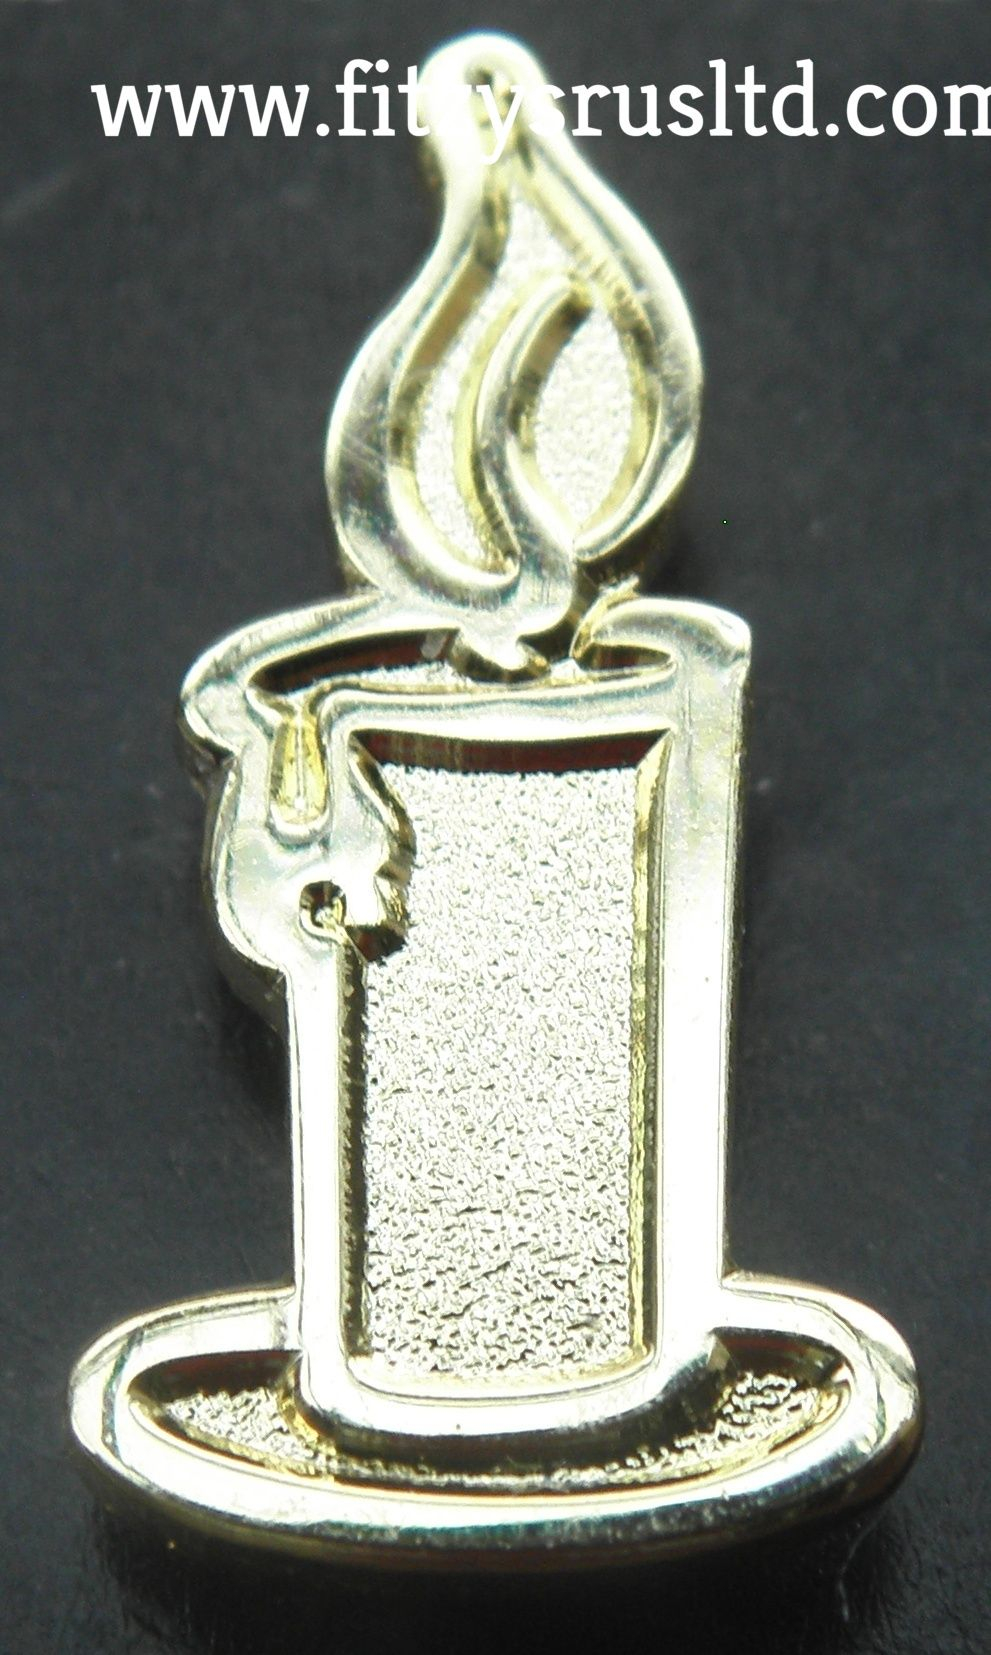 Candle Light Lapel Pin Badge Religious Christian Symbol Candlelight